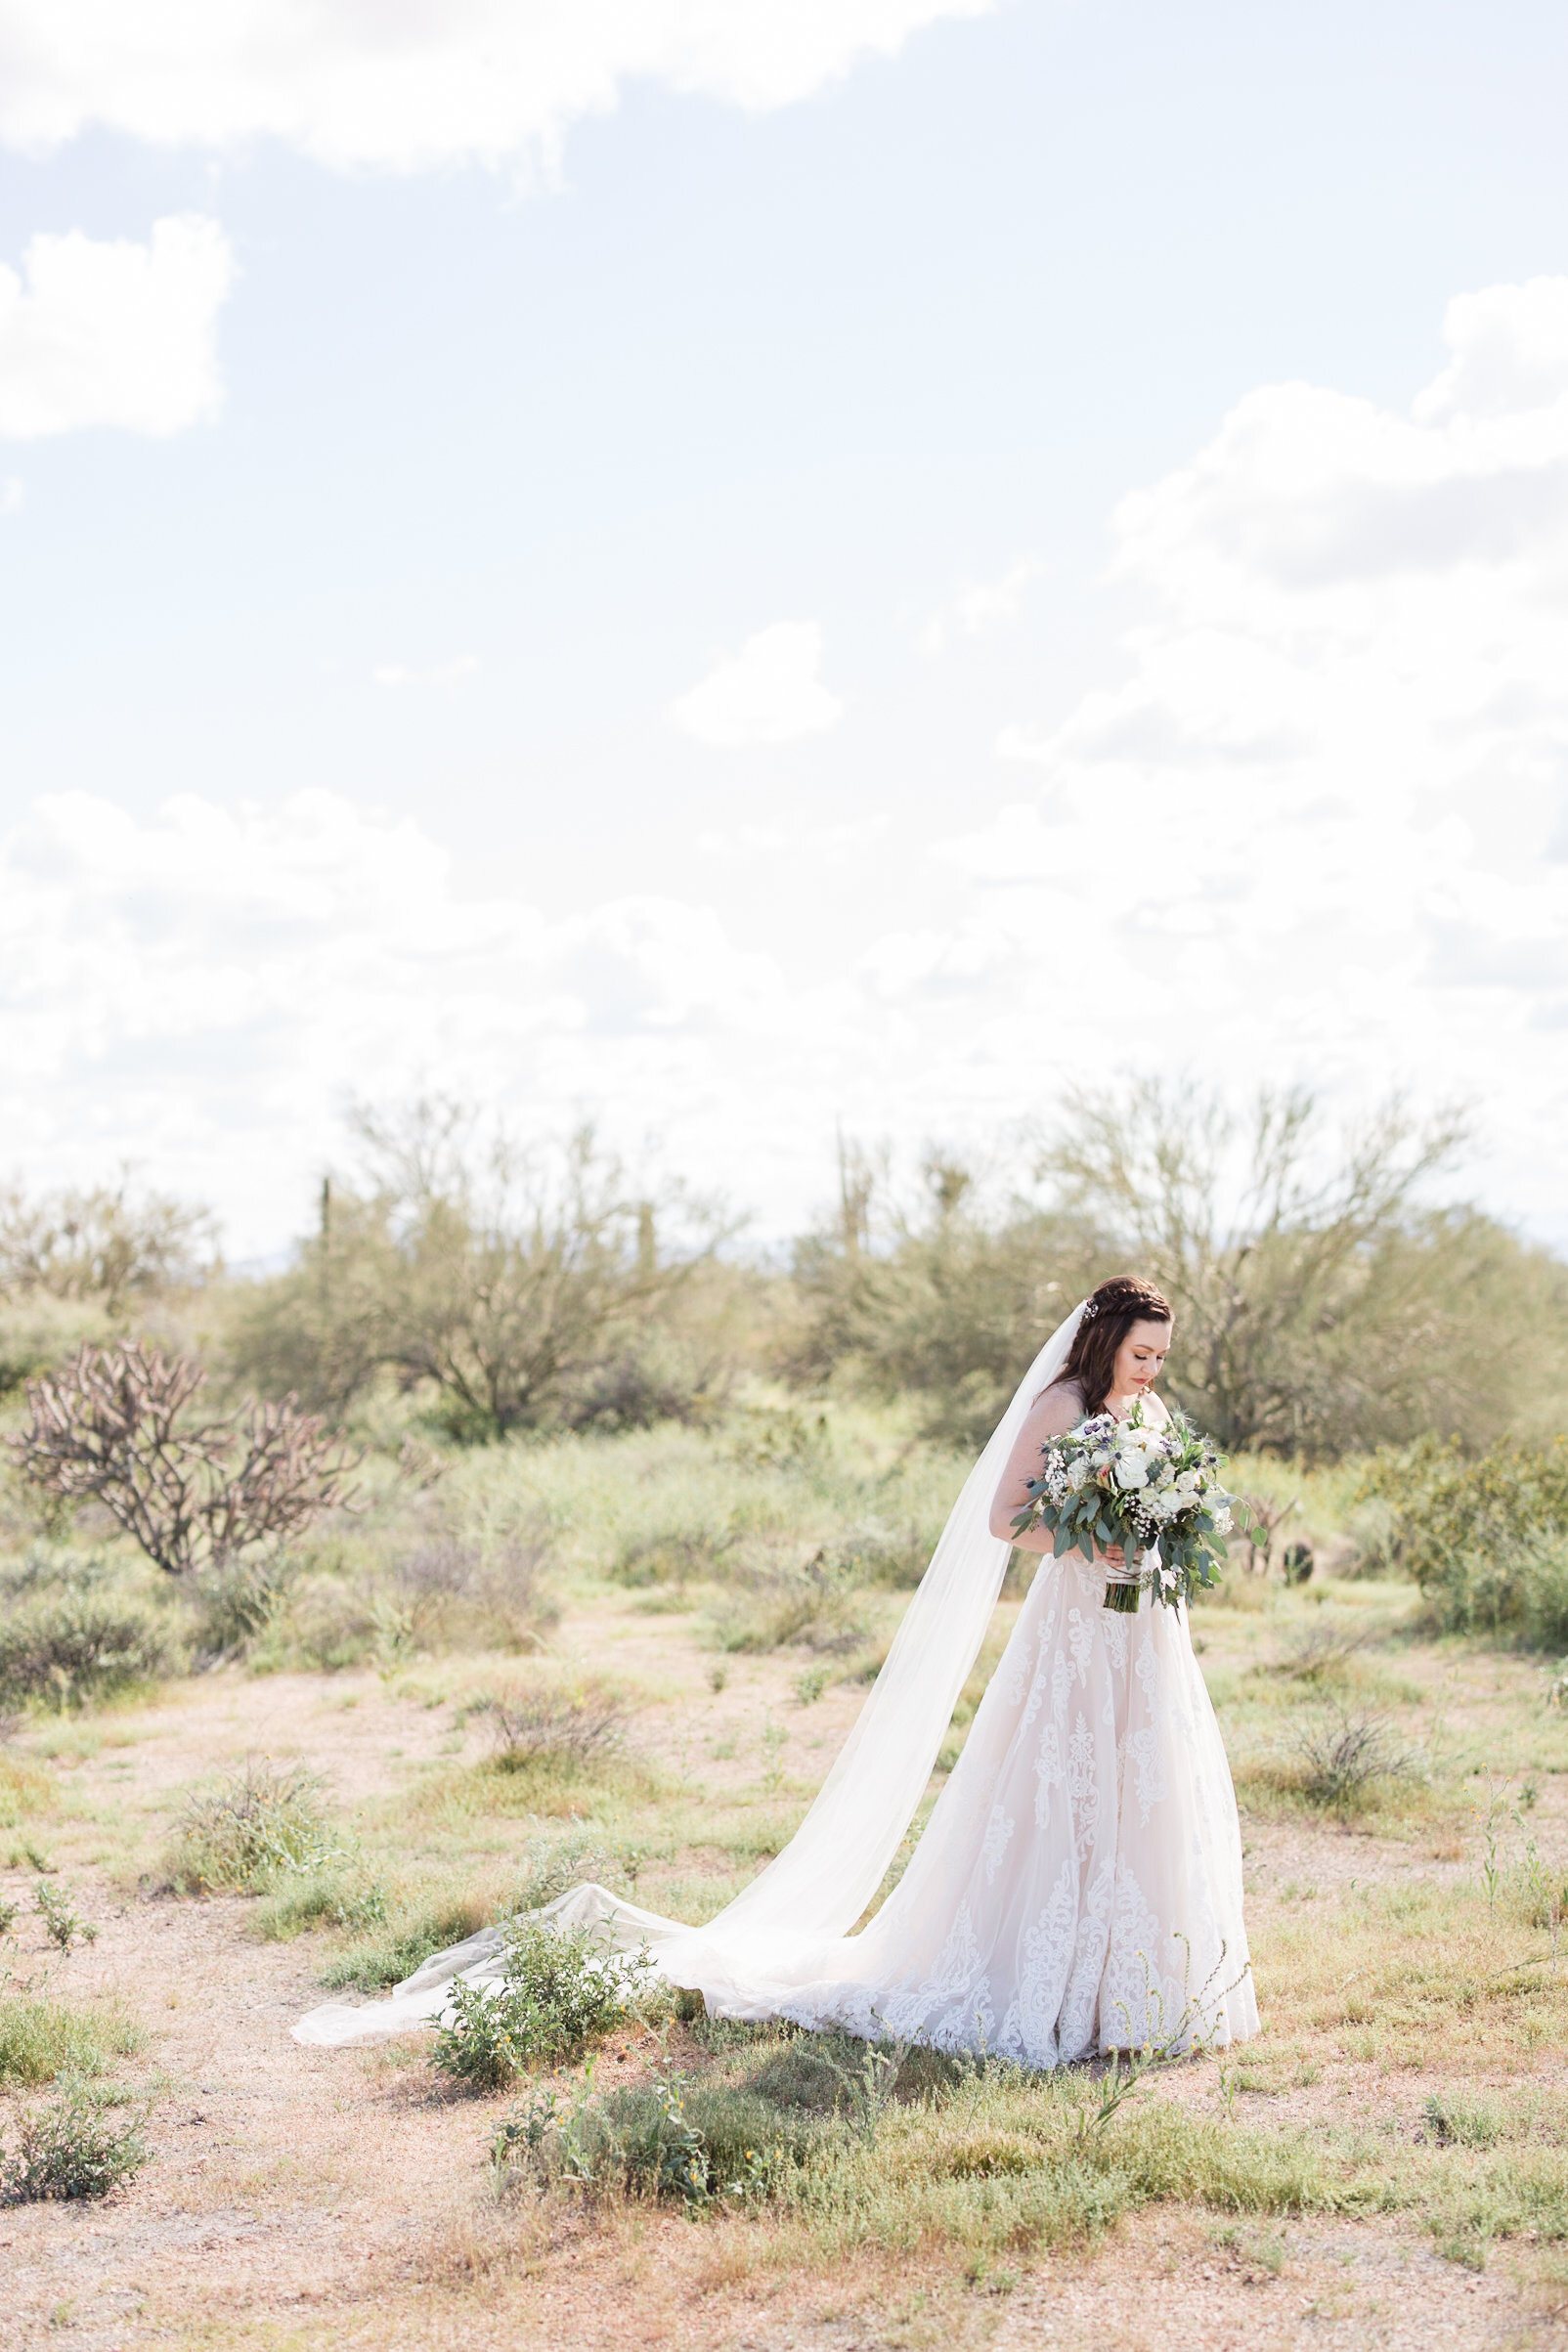 Bride takes time to think while standing in the desert